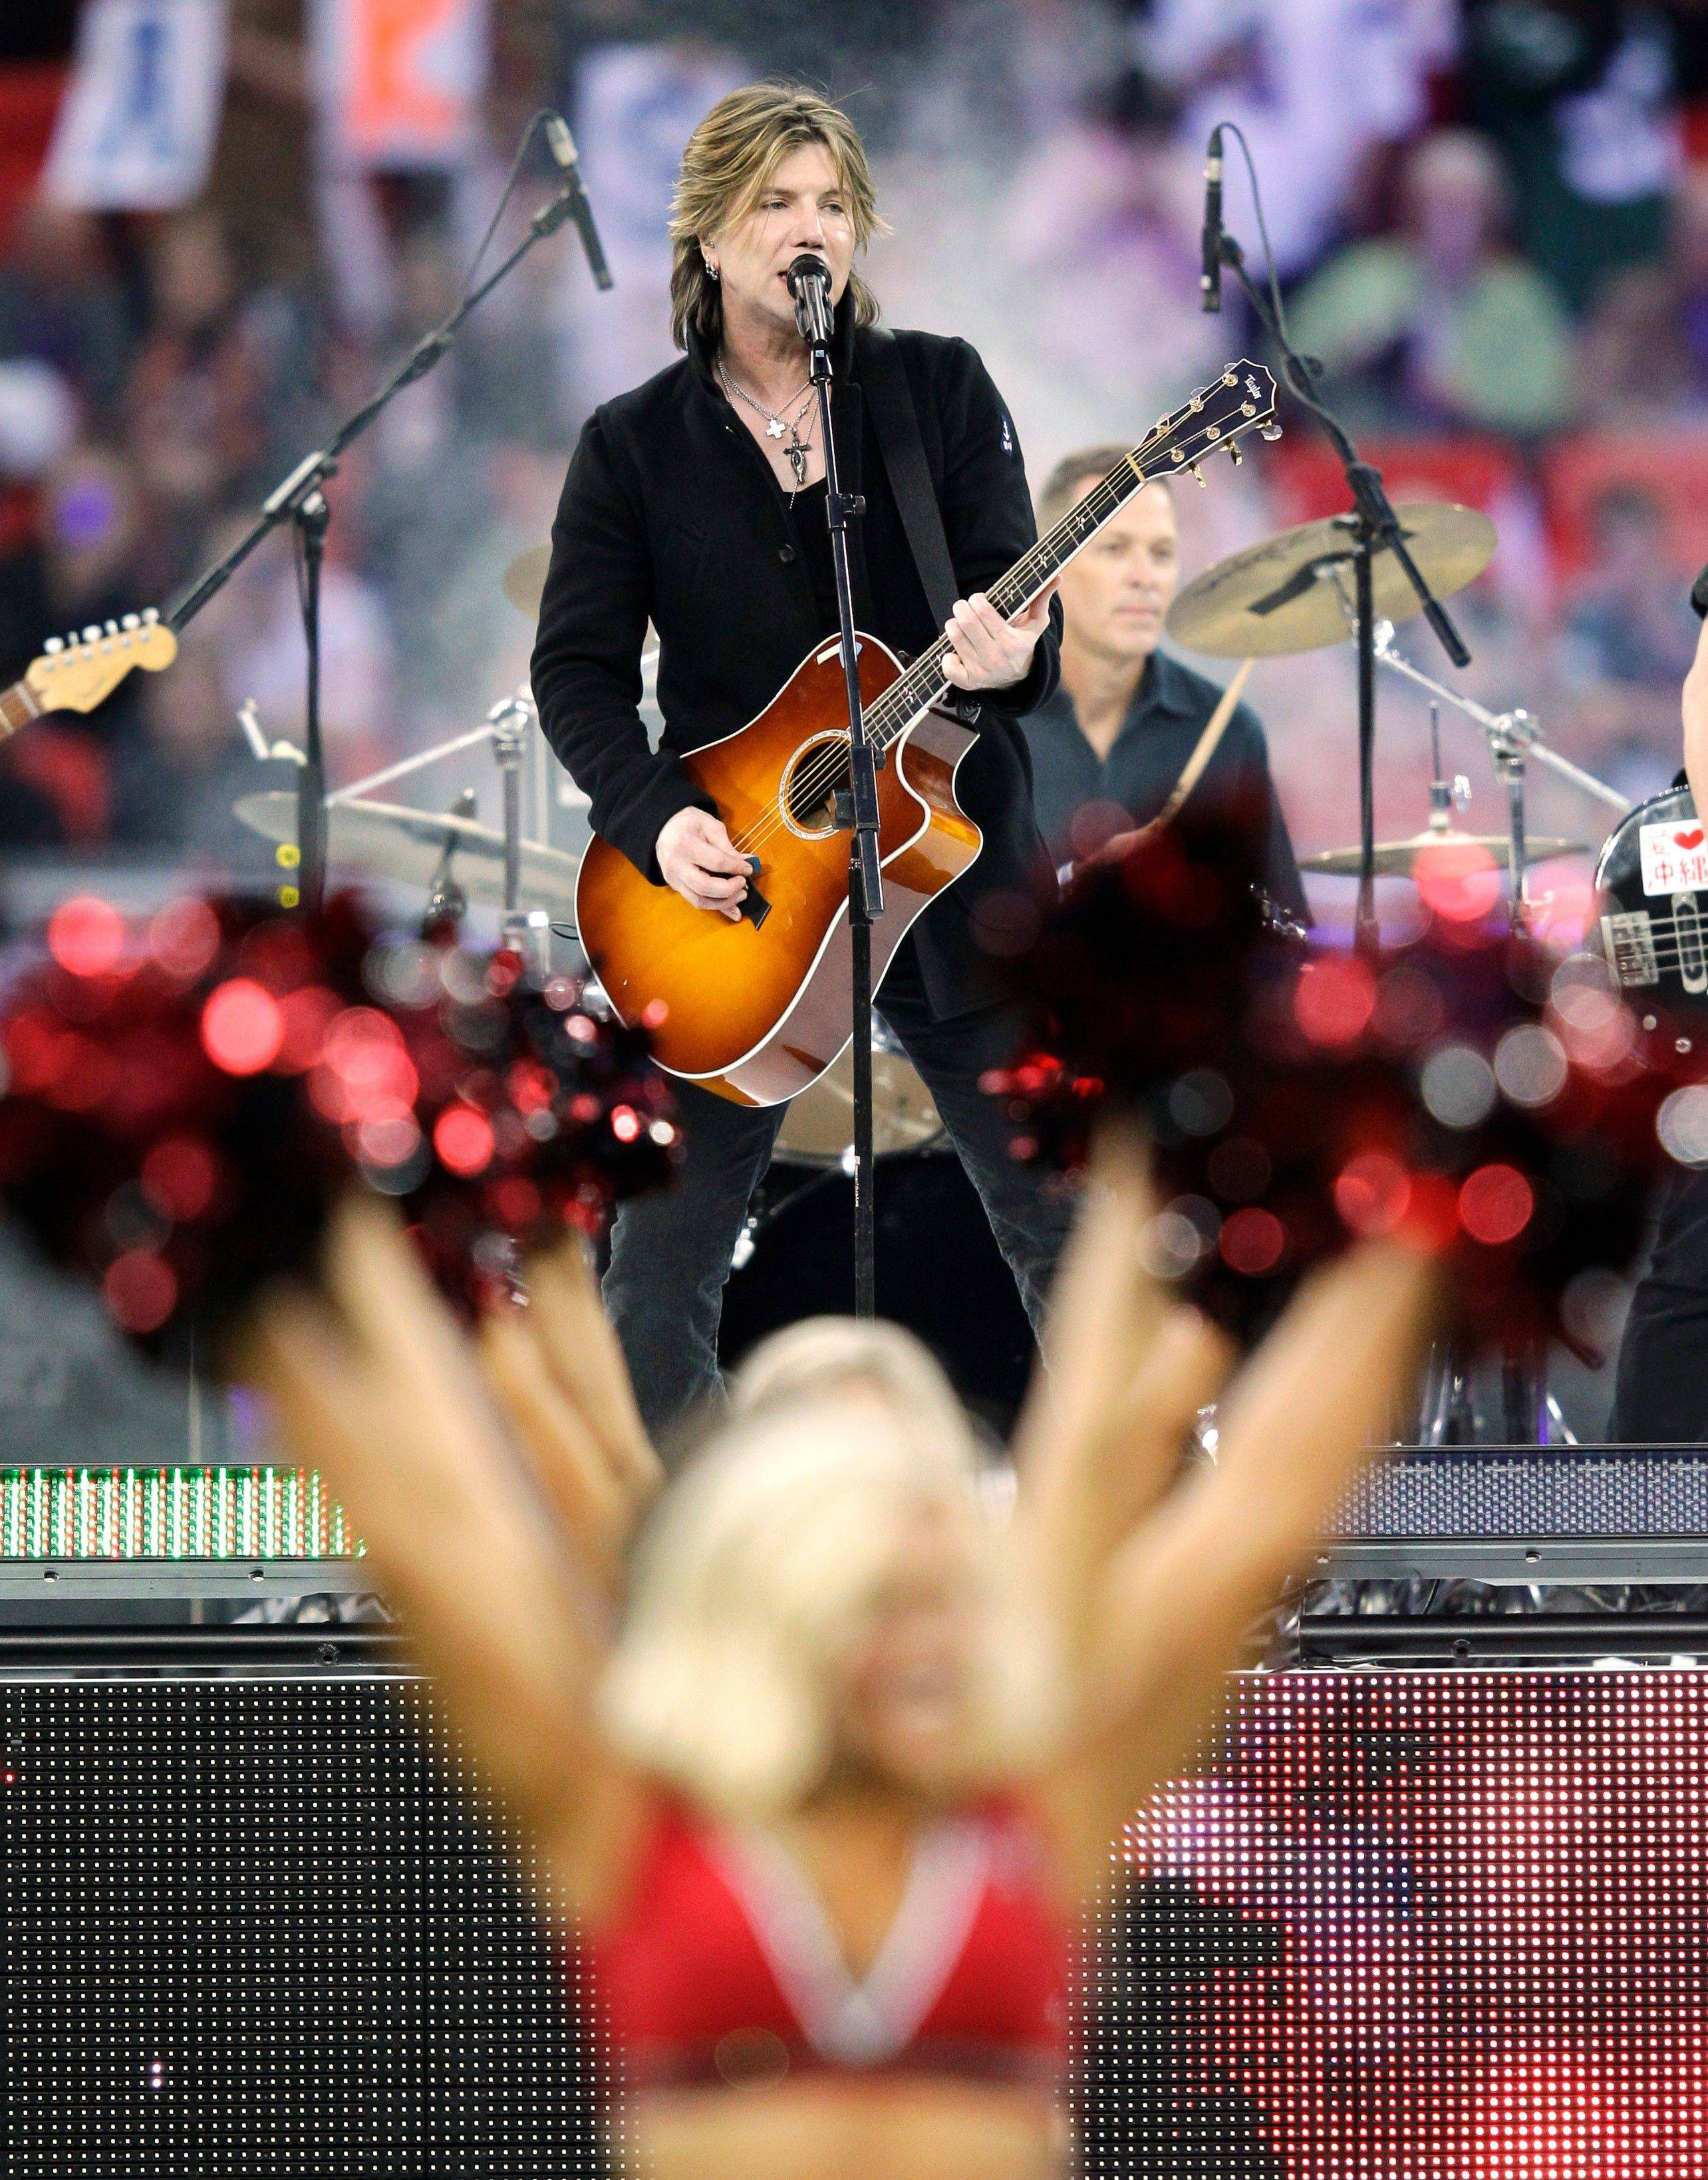 The Goo Goo Dolls perform in front of the Tampa Bay Buccaneers cheerleaders before an NFL football game between the Tampa Bay Buccaneers and Chicago Bears at Wembley Stadium in London.